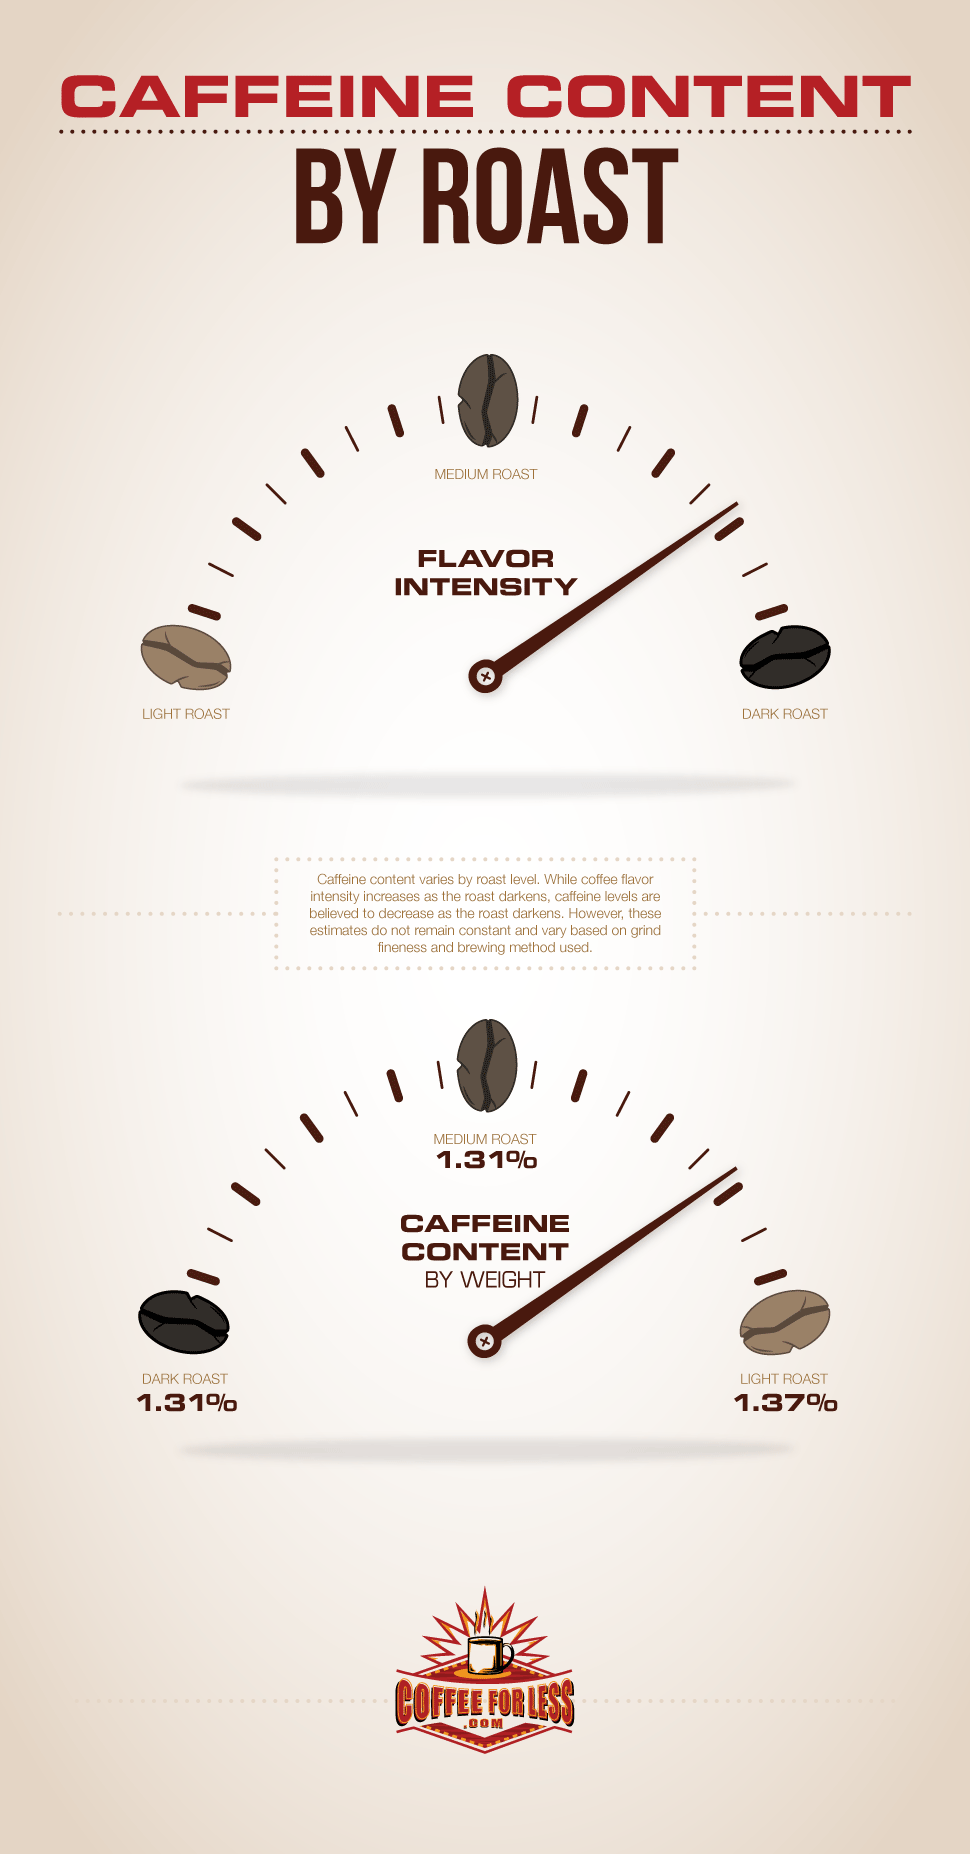 The amount of caffeine in your coffee varies based on how roasted the beans were. The grind and brewing method also play a part.